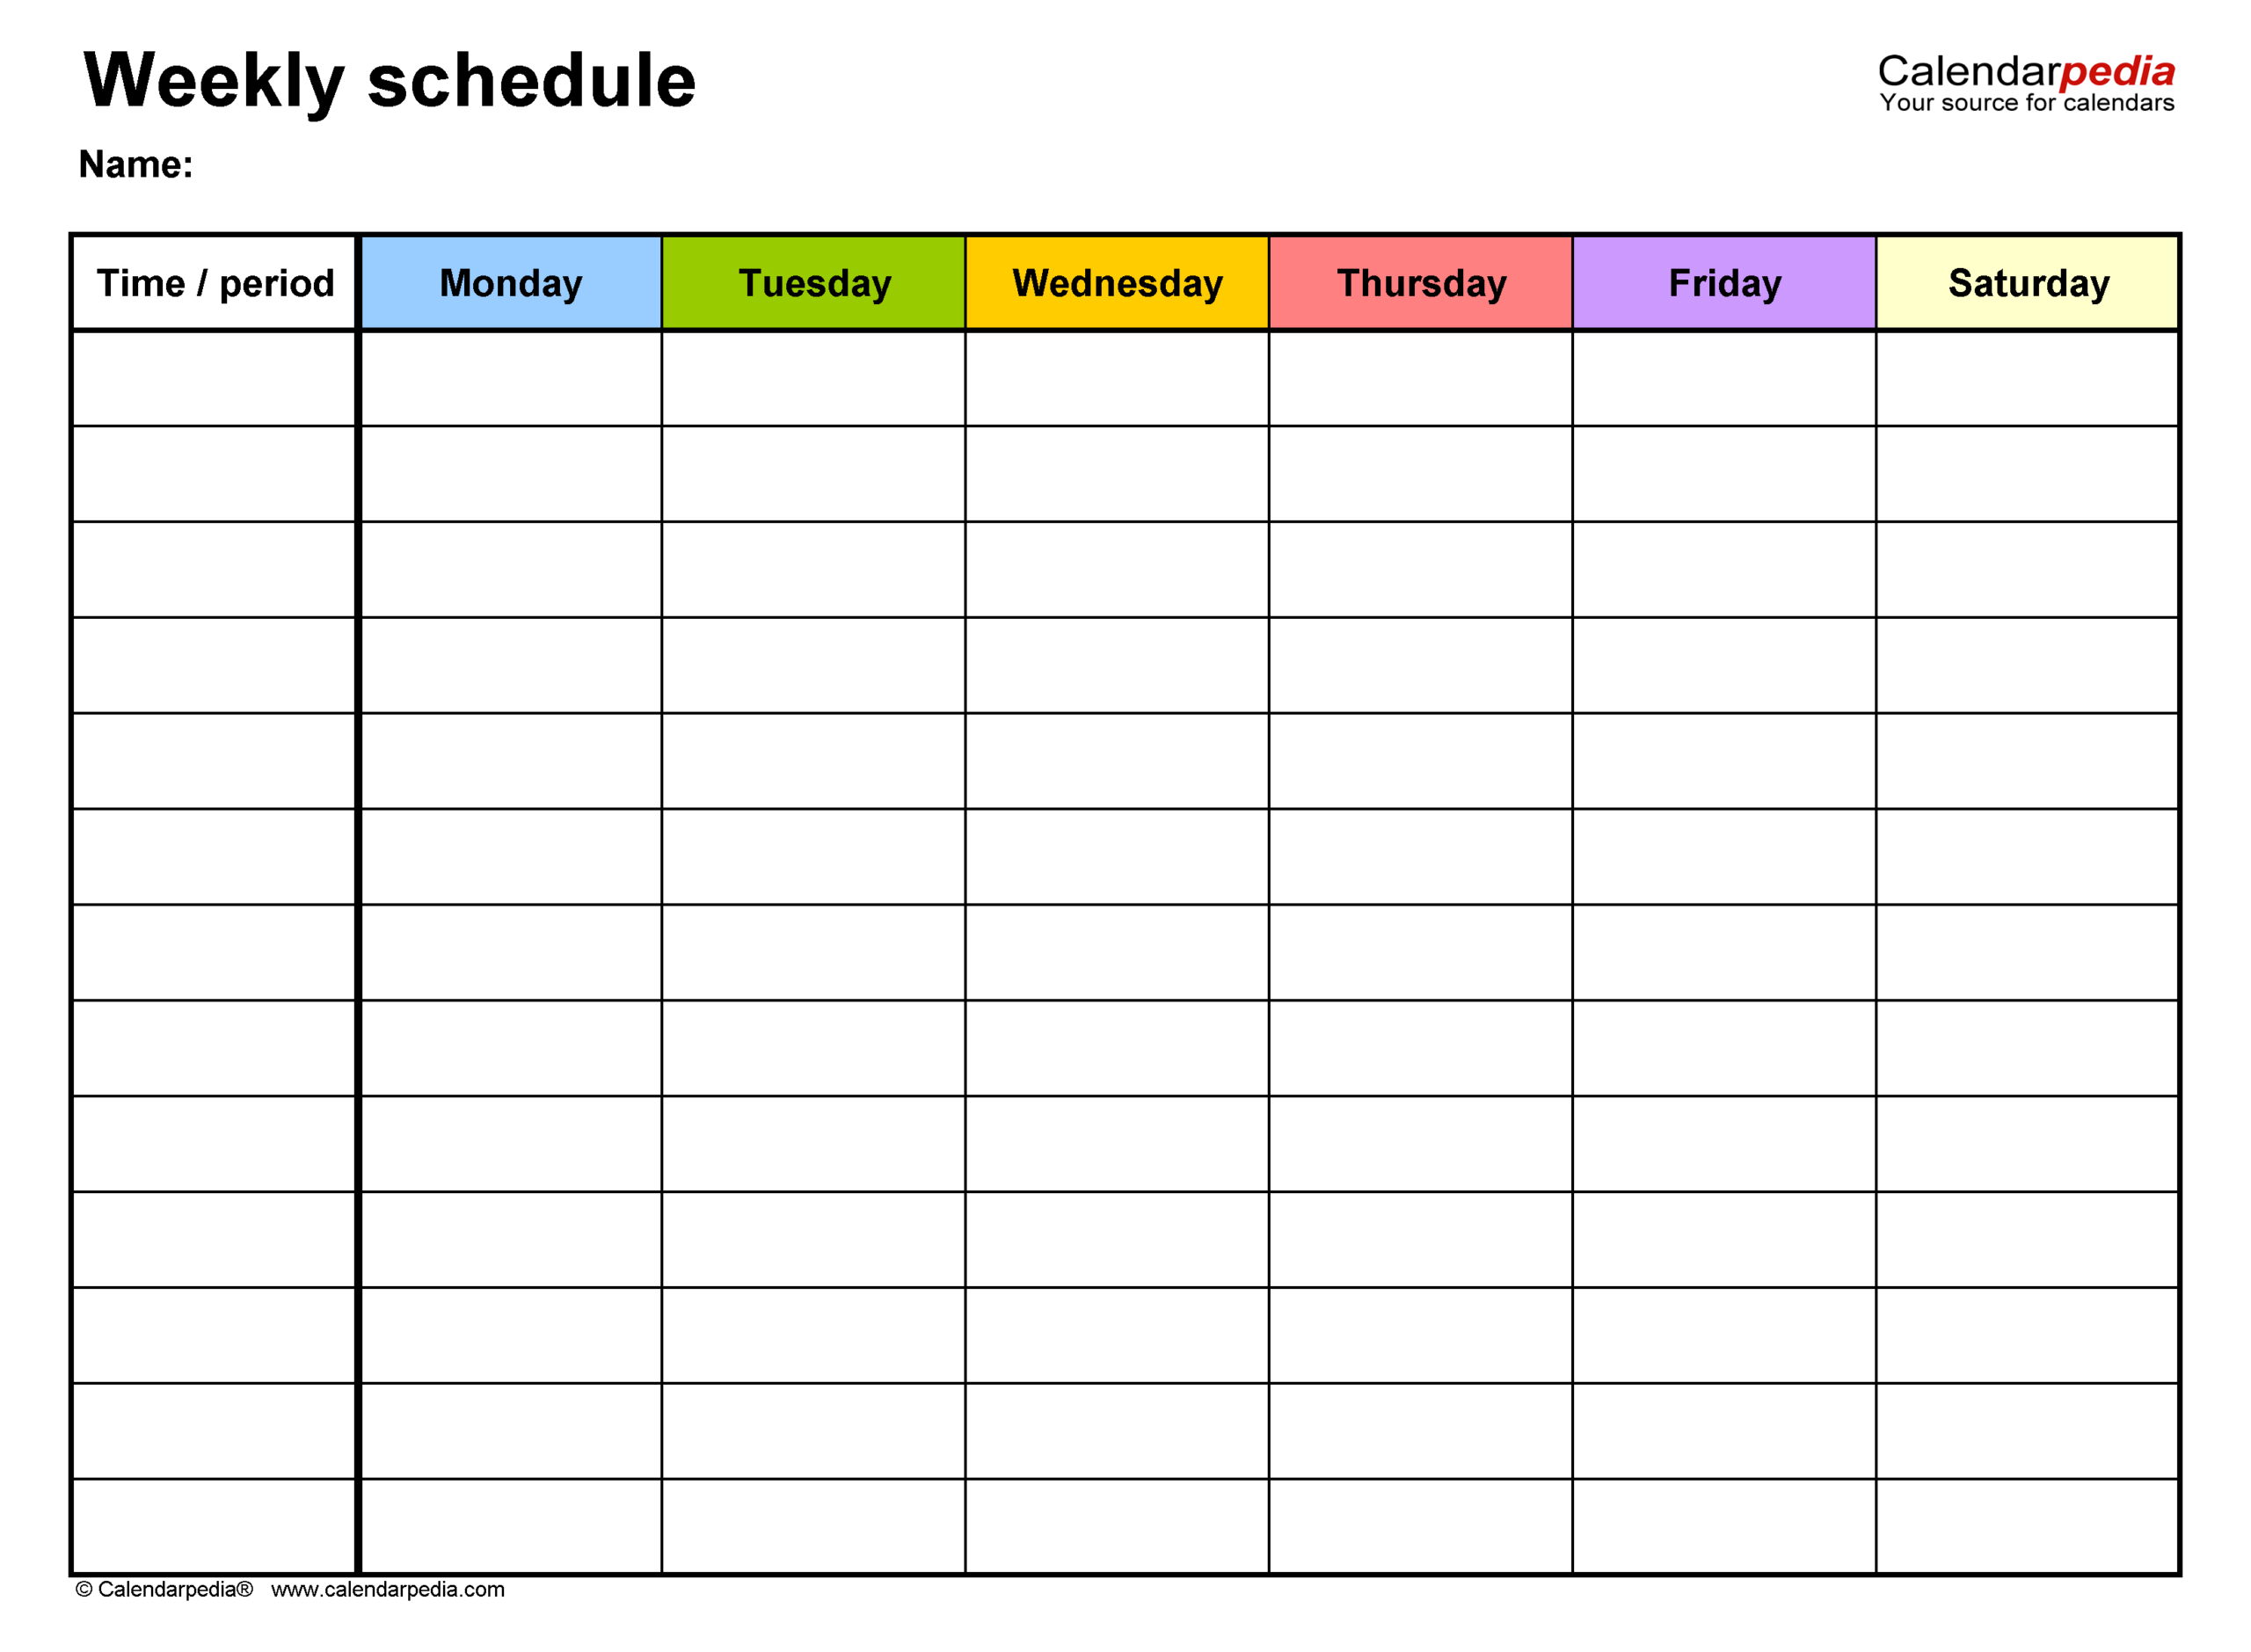 Free Weekly Schedule Templates For Excel  18 Templates inside Monday Through Friday Calendar Template Excel